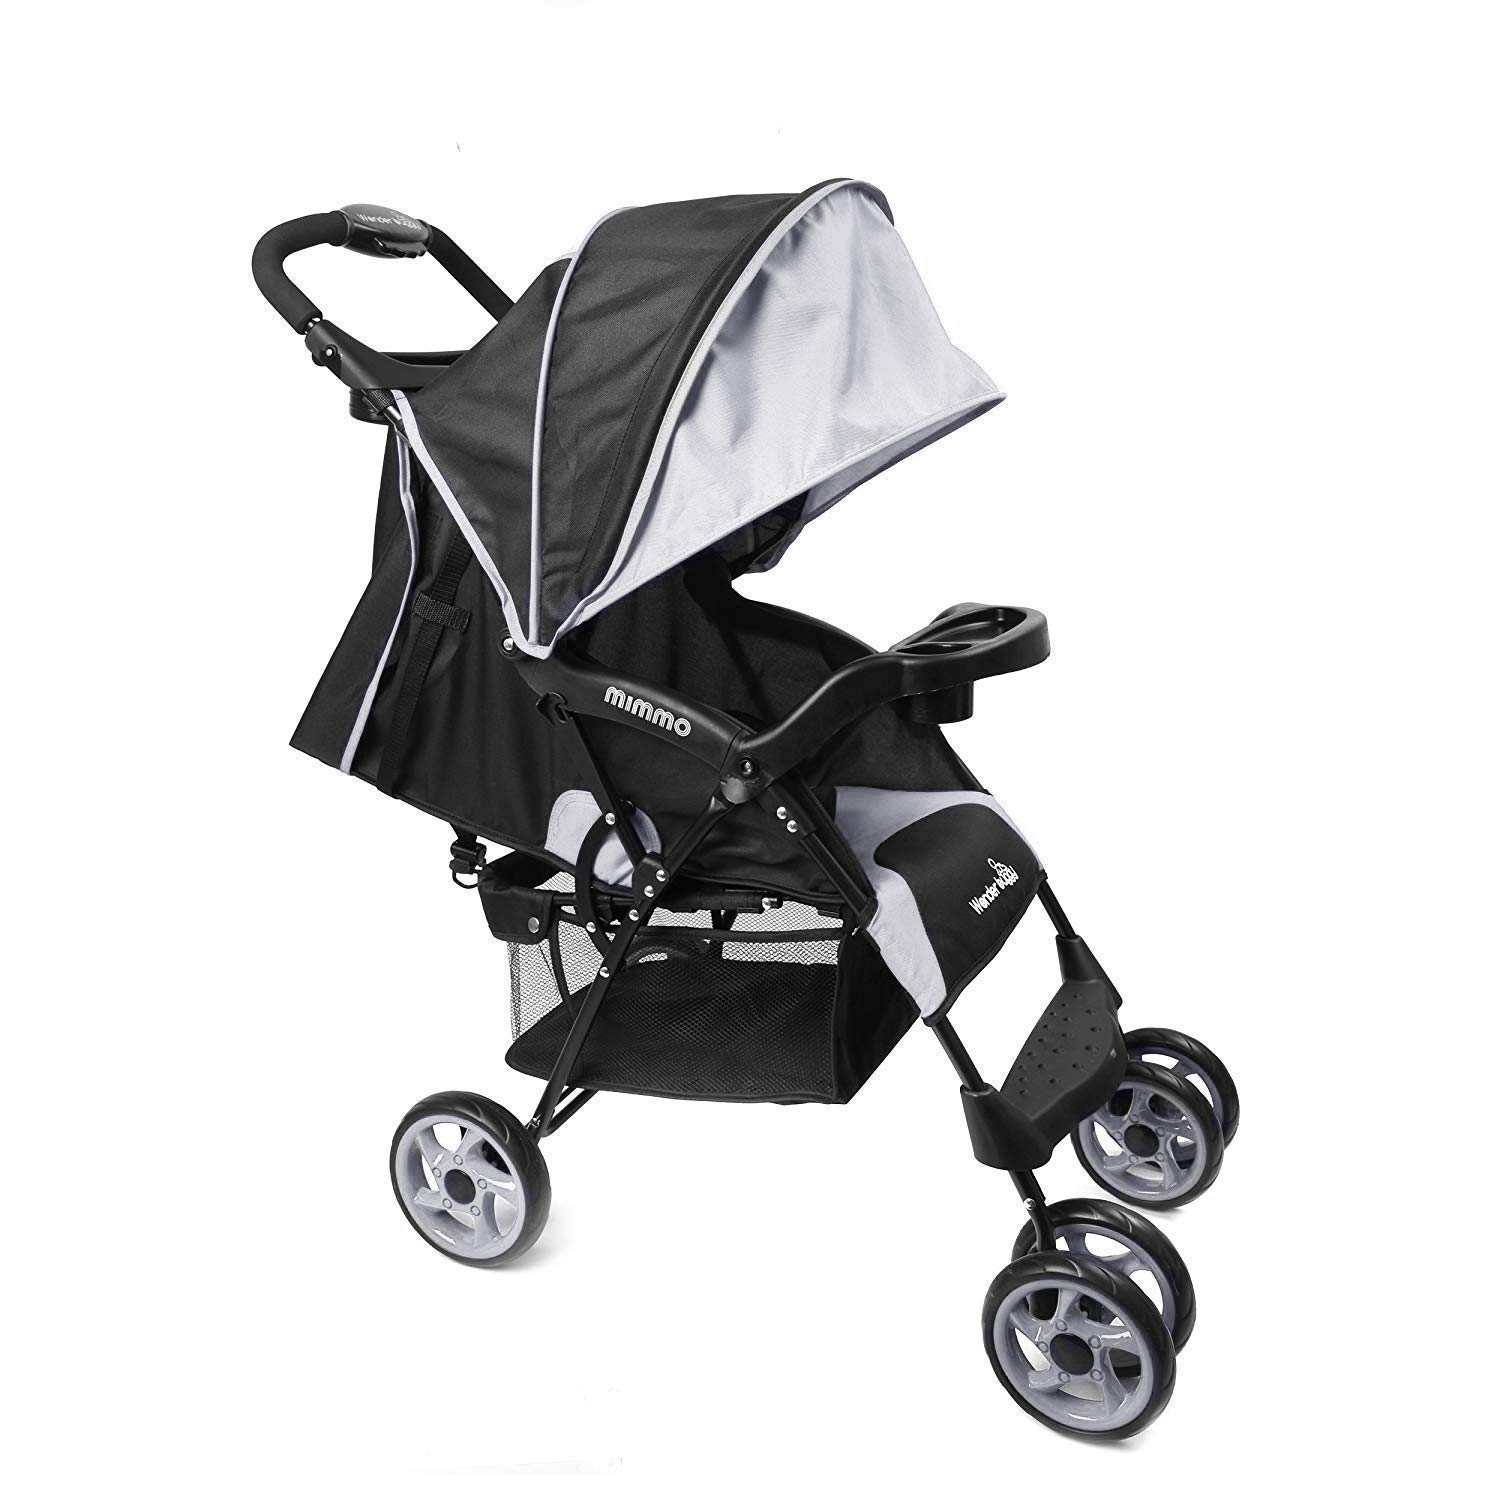 Wonder buggy Lightweight Baby Stroller, Foldable Infant Pushchair with 5-Point Safety Harness, Multi-Position Reclining Seat, Parent and Child Tray, Large Storage Basket, Suspension Wheels, Black